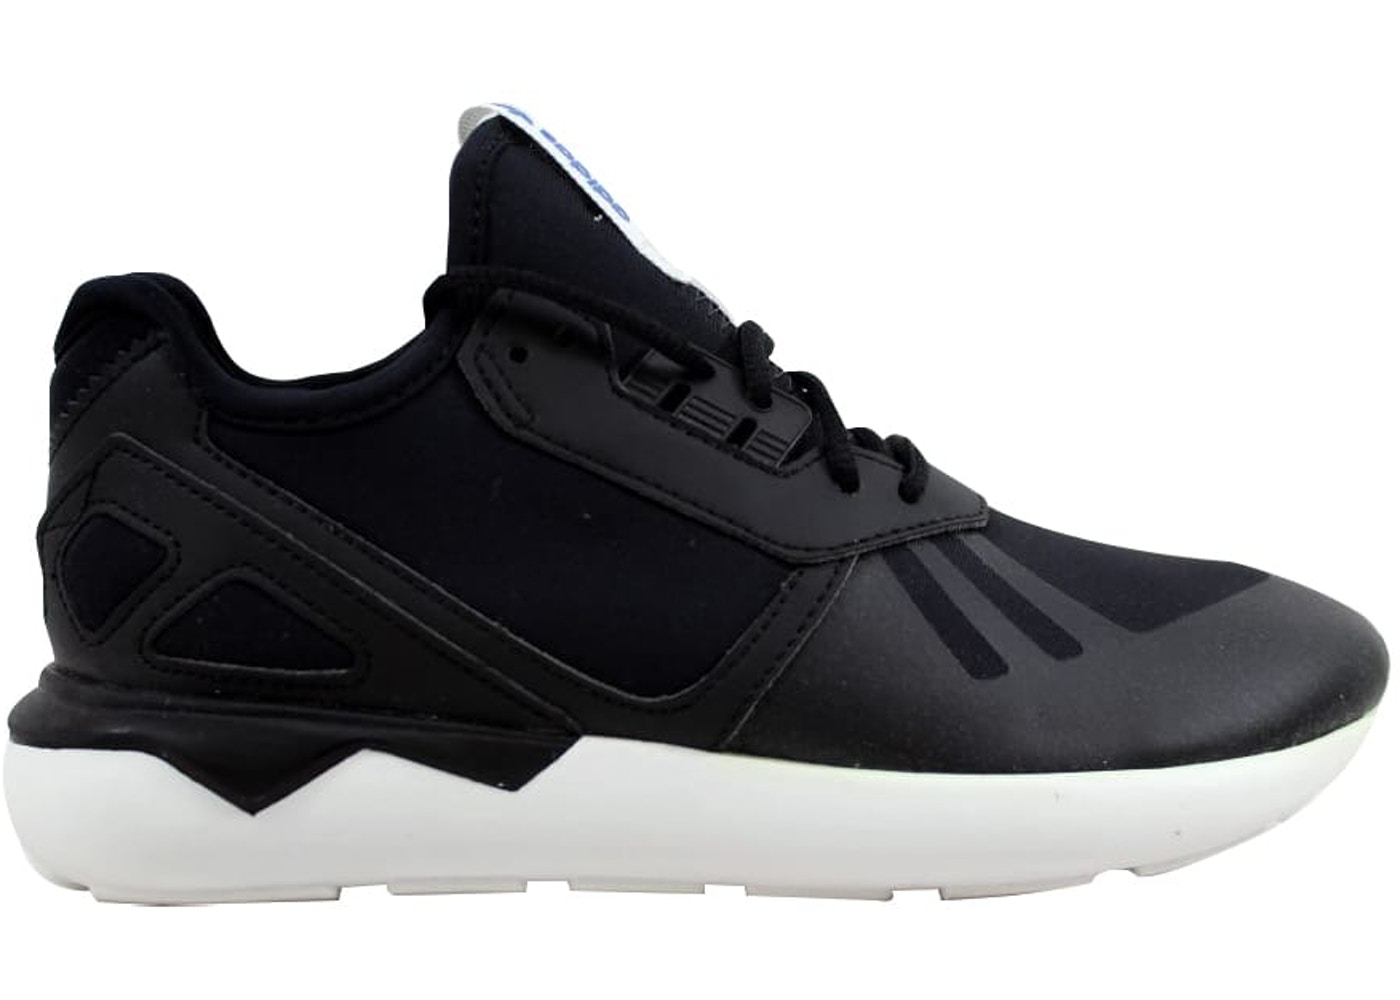 quality design 5aca4 e1601 adidas Tubular Runner Black/Black-Green (W)